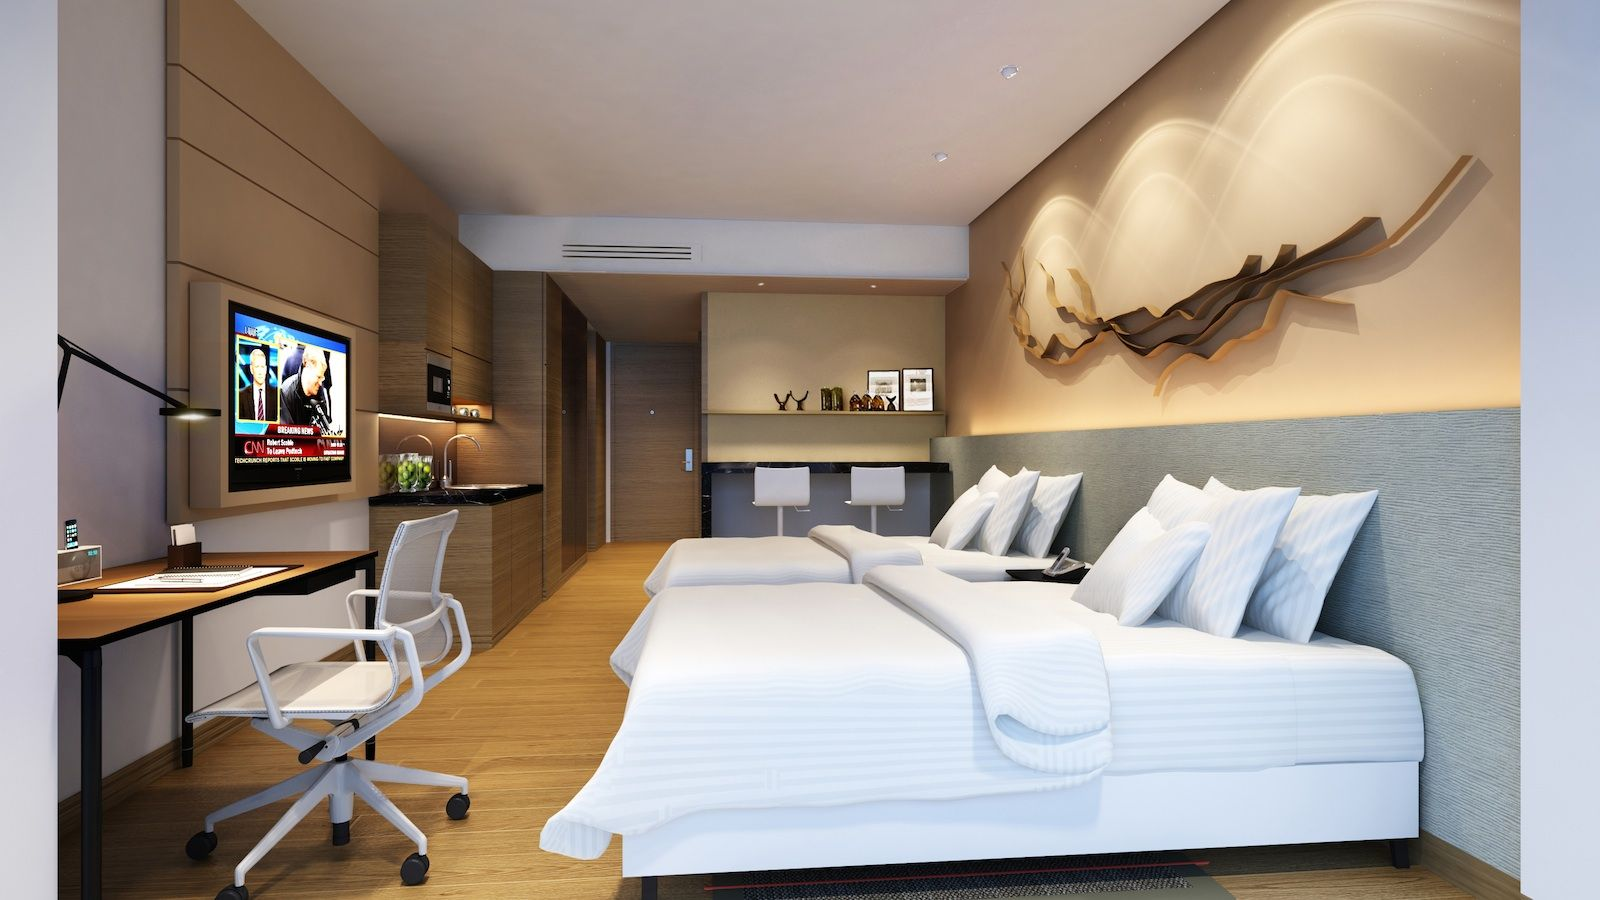 Element by Westin - Eco-friendly boutique hotel